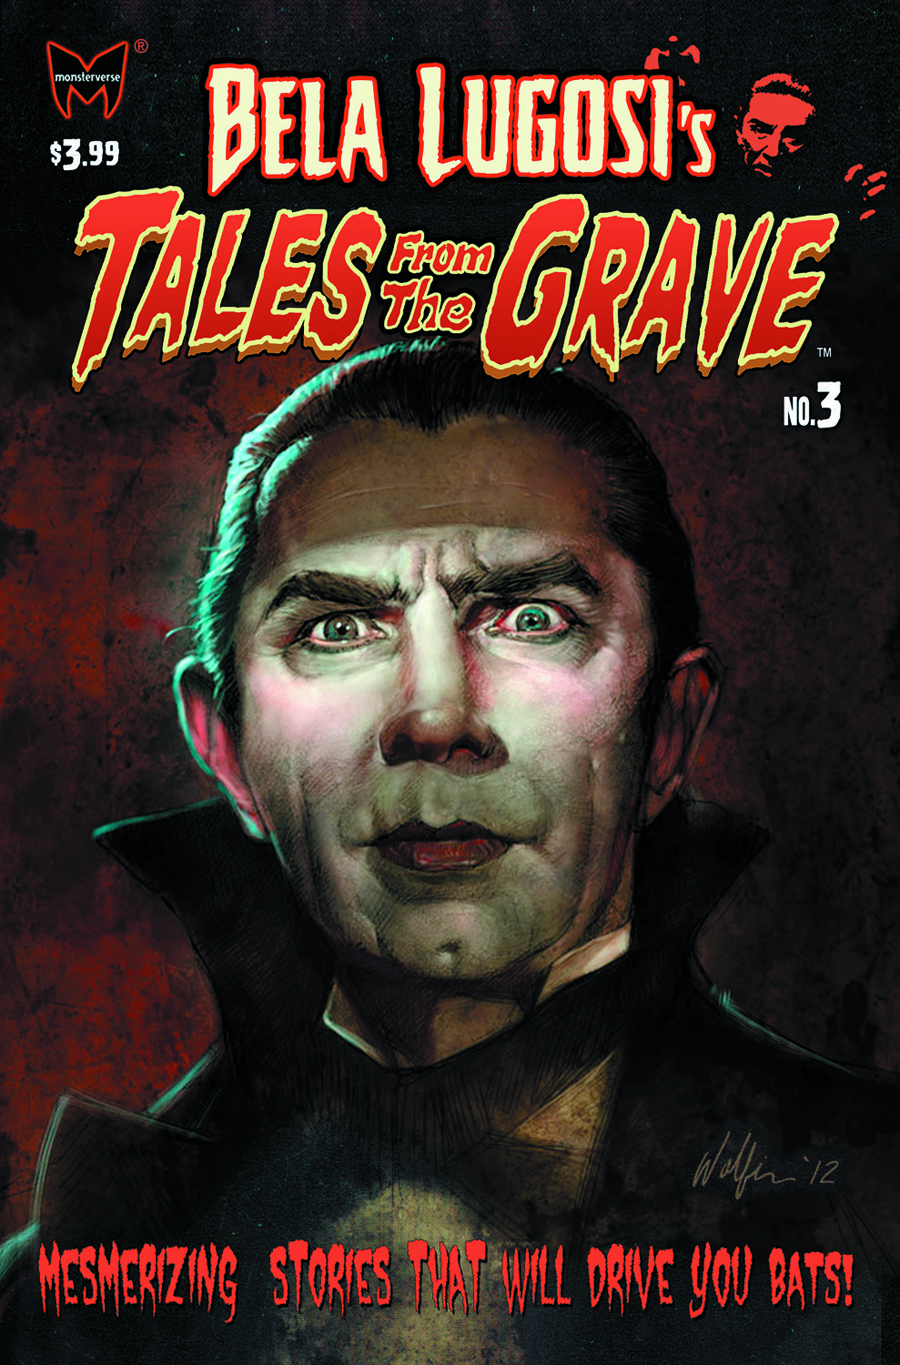 BELA LUGOSI TALES FROM GRAVE #3